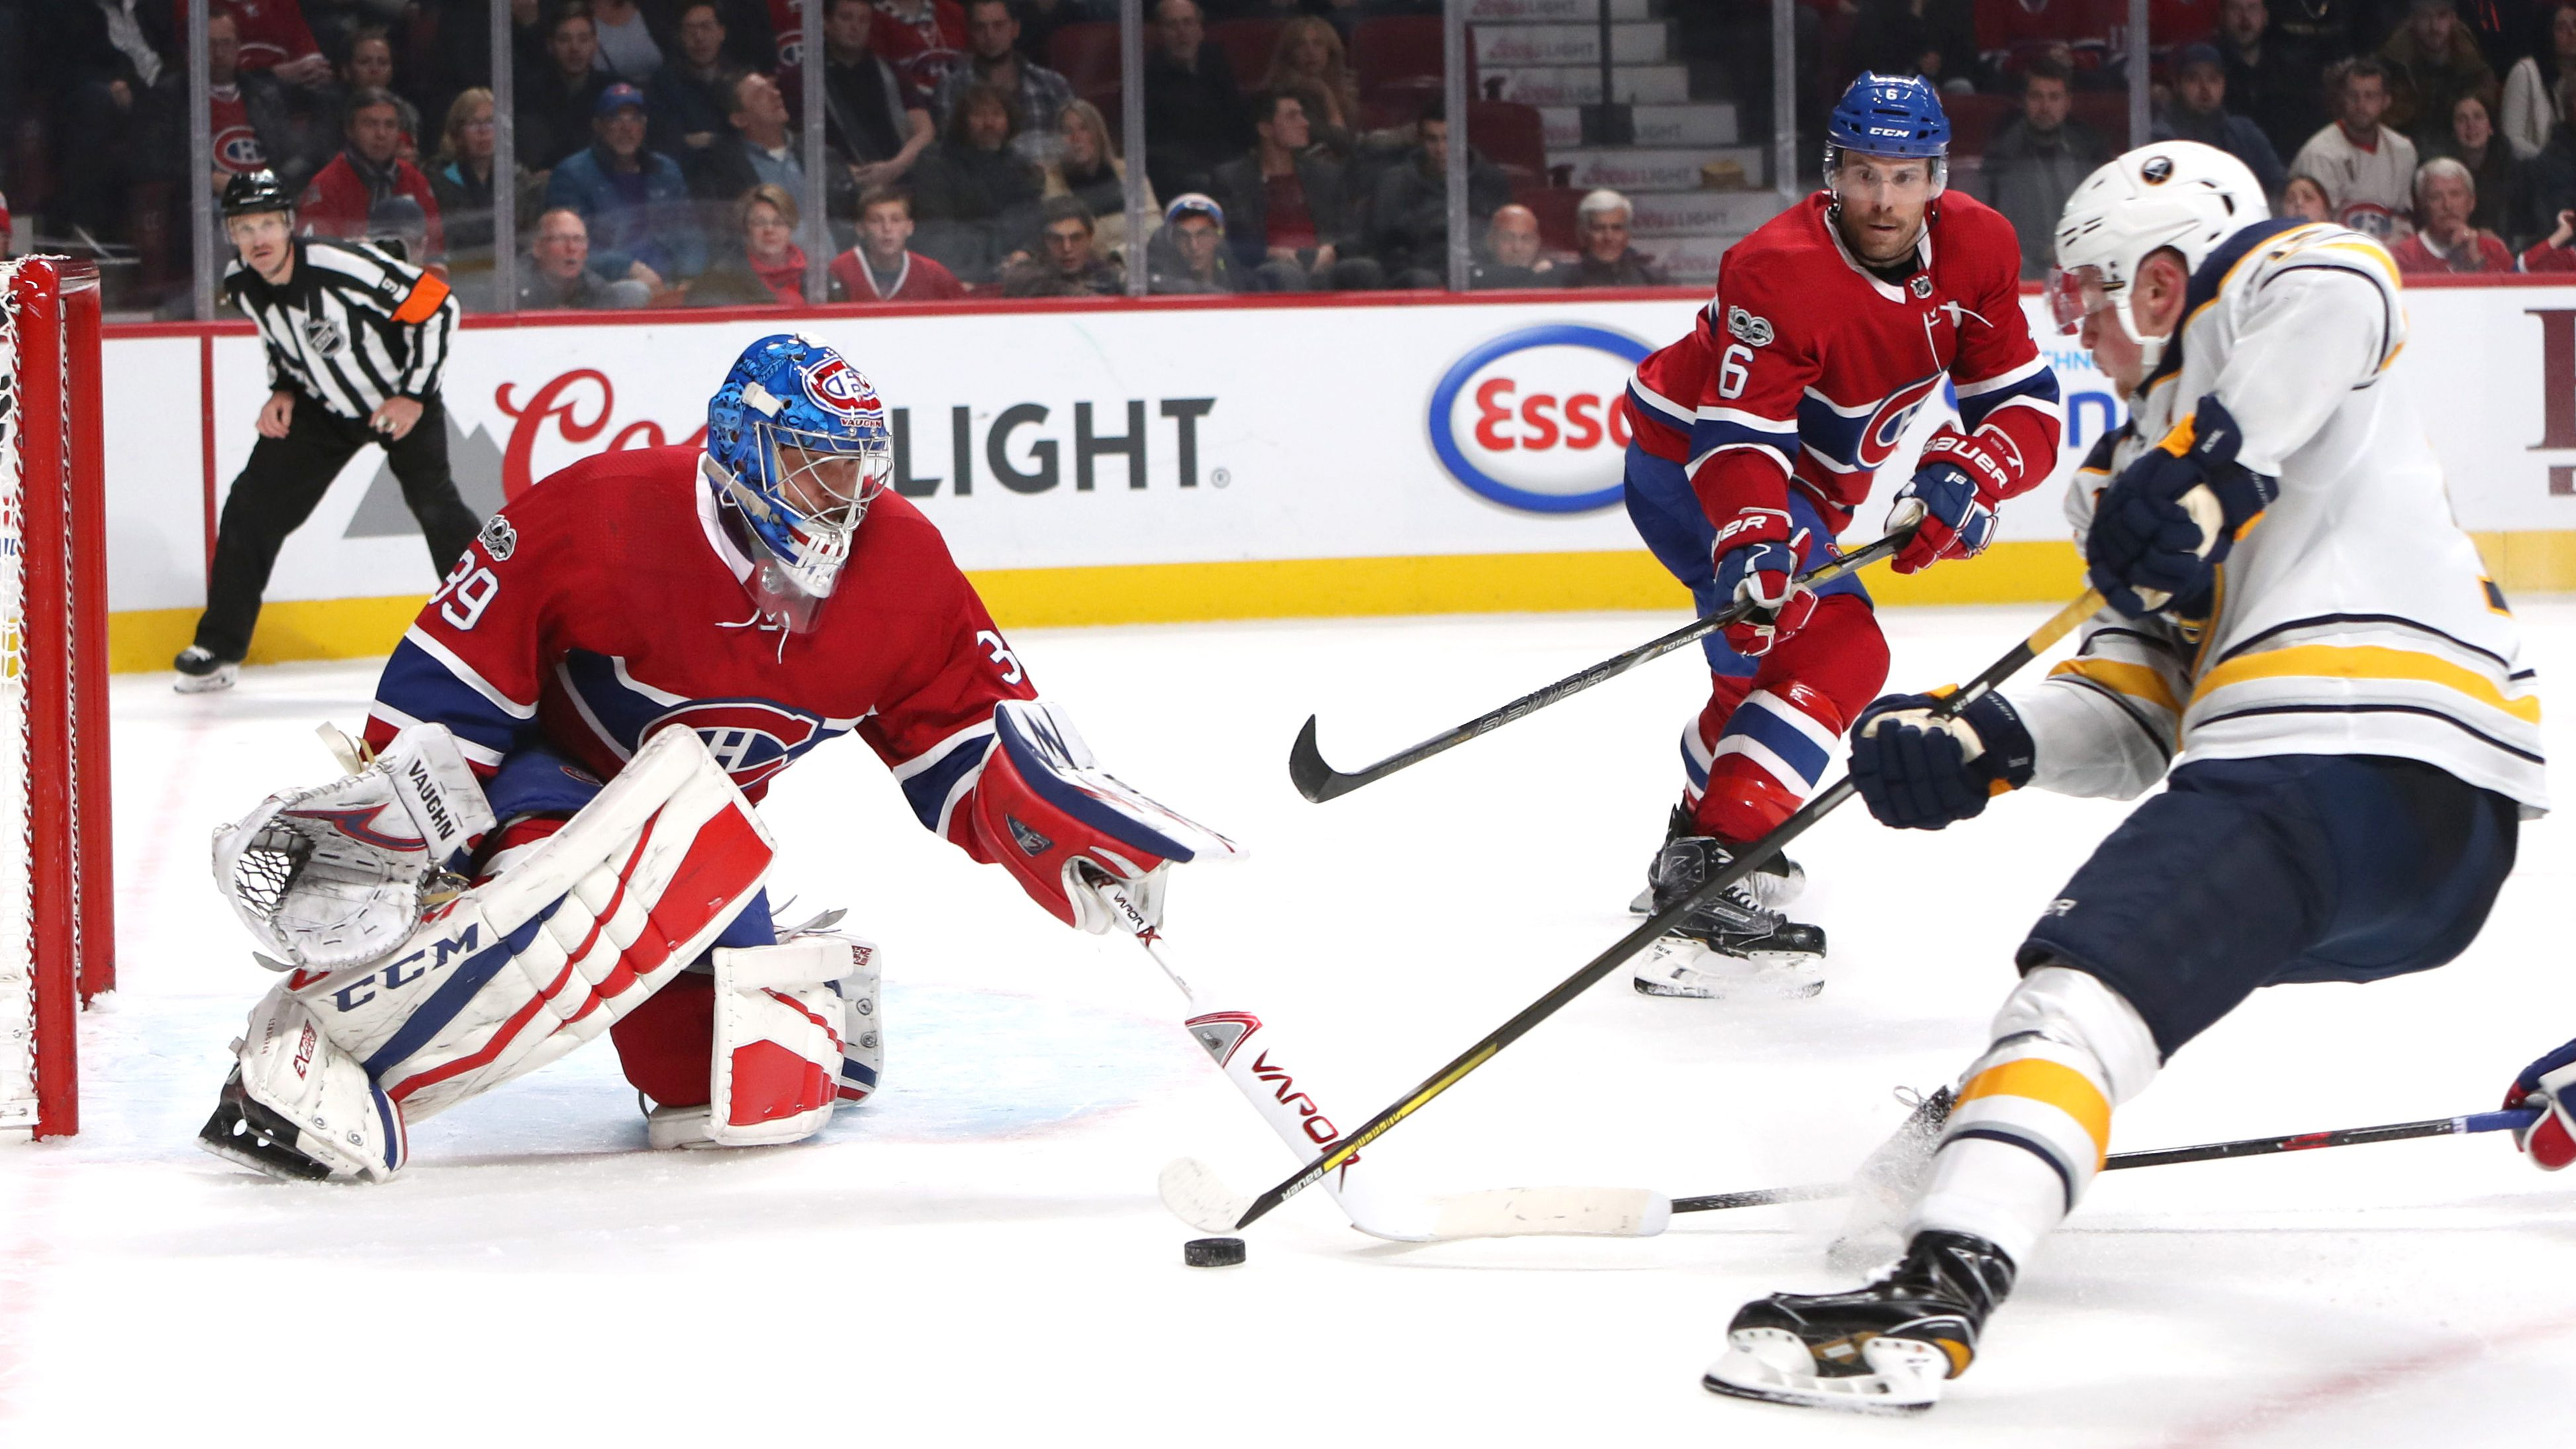 Nov 11, 2017; Montreal, Quebec, CAN; Buffalo Sabres center Jack Eichel (15) shoots against Montreal Canadiens goalie Charlie Lindgren (39) as defenseman Shea Weber (6) defends during an over time period at Bell Centre. Mandatory Credit: Jean-Yves Ahern-USA TODAY Sports90 - 10405830